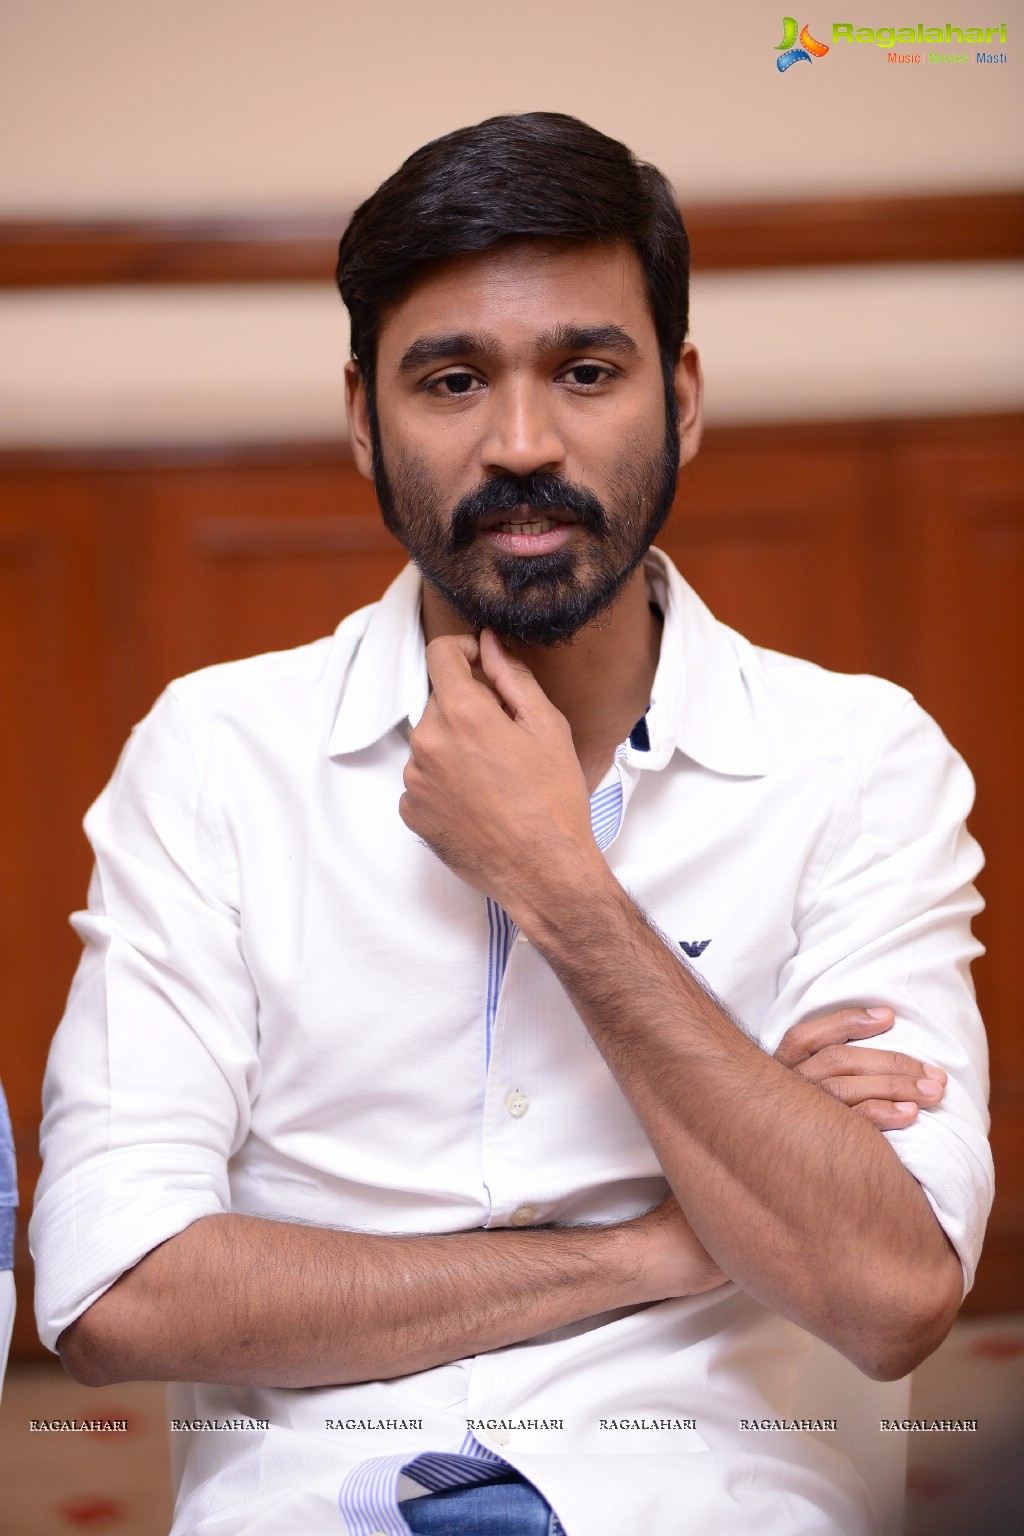 dhanush image 51 | latest bollywood actor wallpapers,images, photos